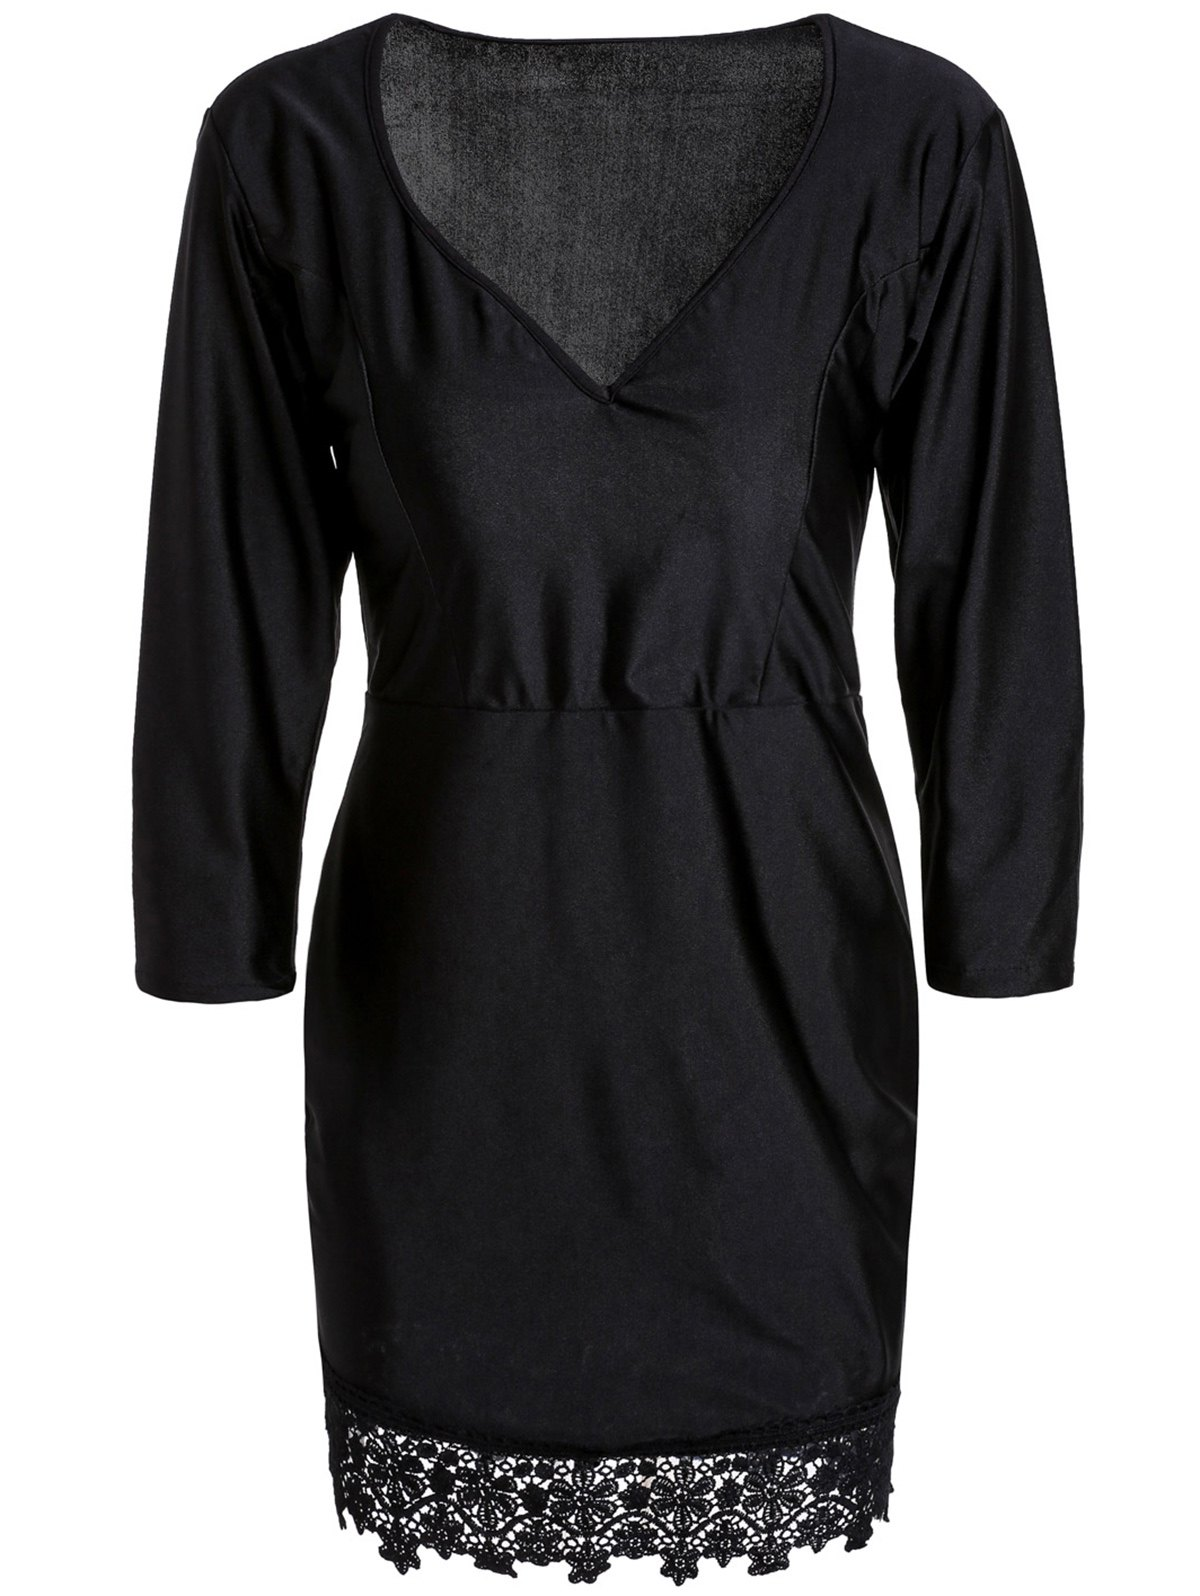 Trendy Plunging Neck Black 3/4 Sleeve Lace Hem Bodycon Dress For Women - BLACK S